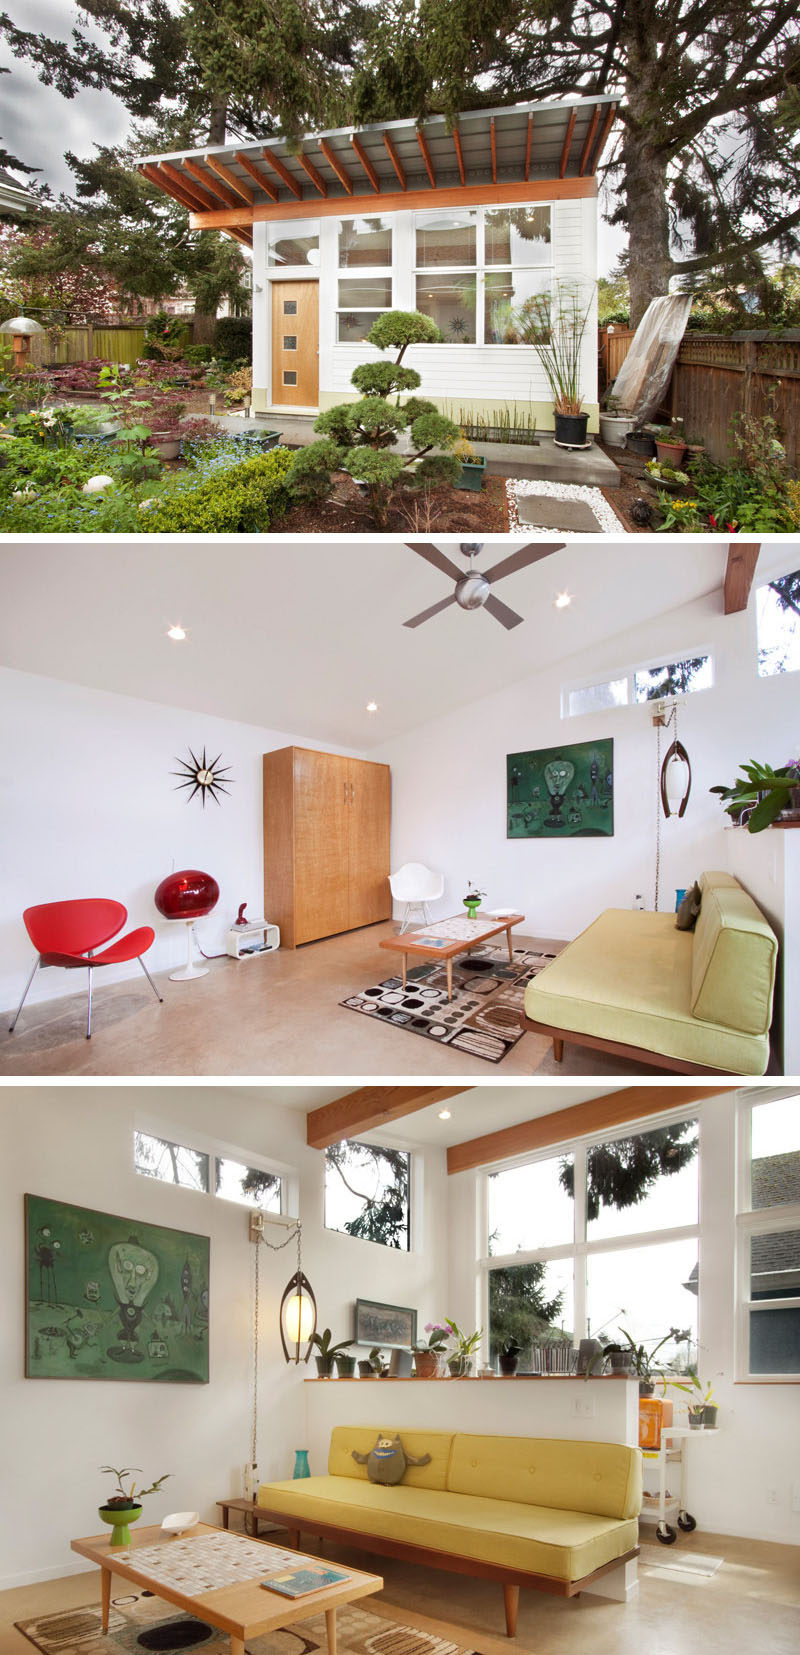 A modern backyard studio with a lounge and potting area for plants.